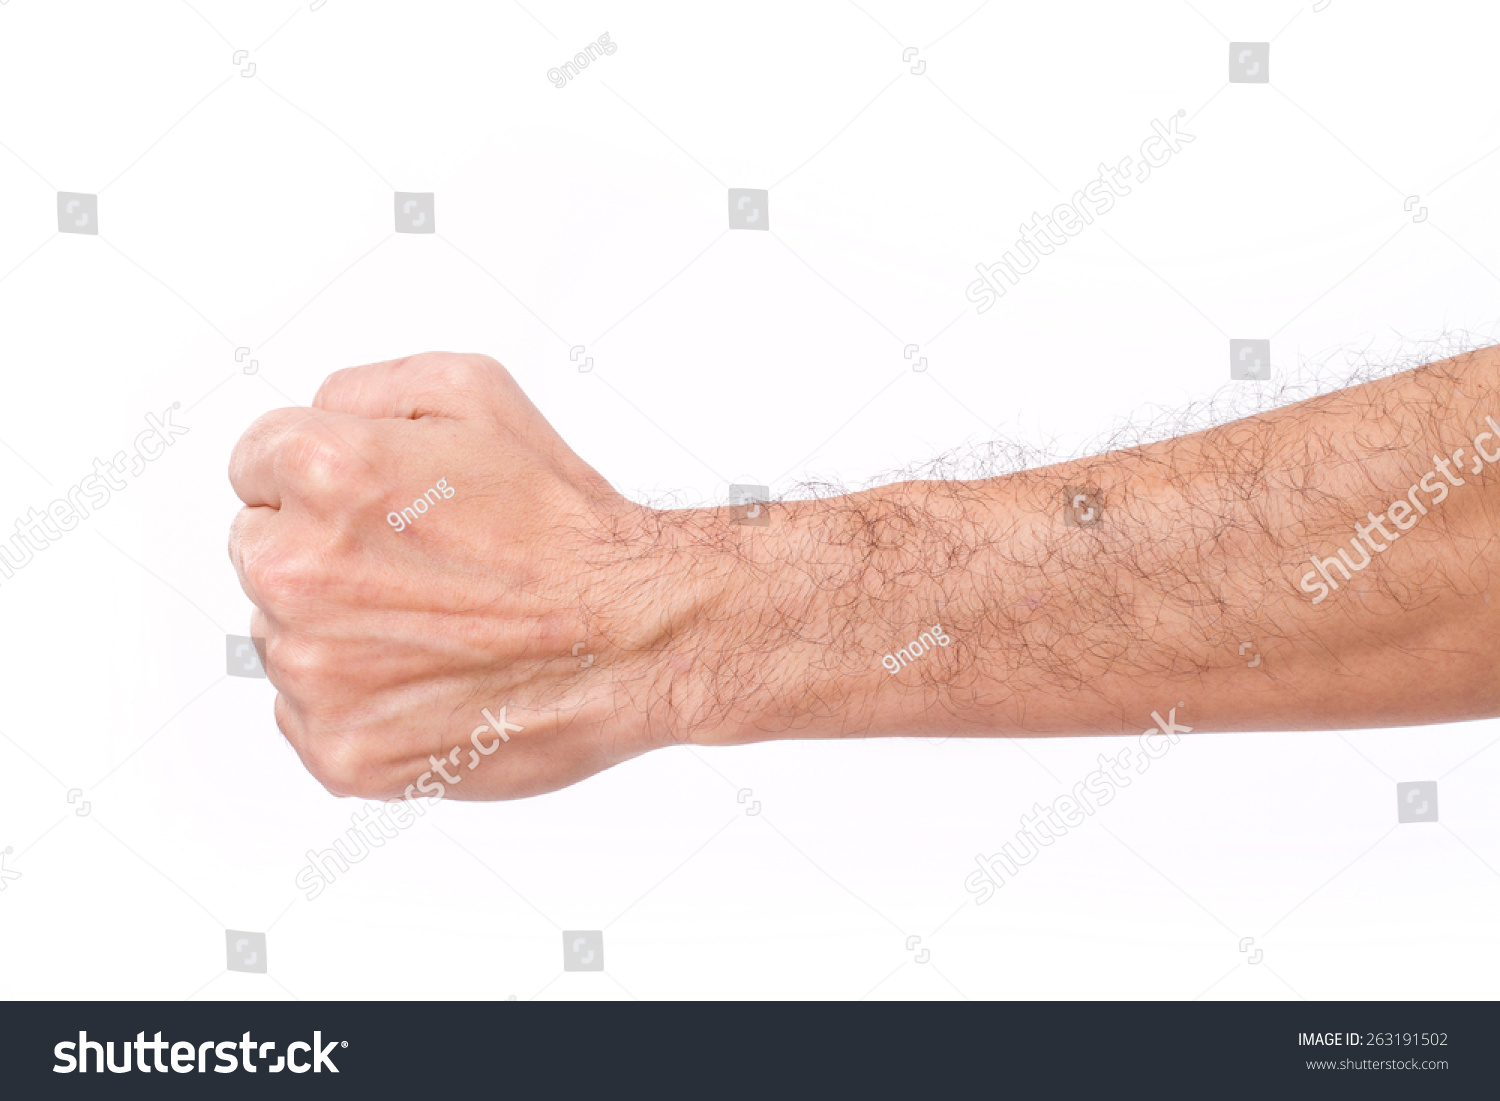 Armamento y Vestimenta: Guerreando en Calradia Stock-photo-man-s-fist-with-hairy-arm-263191502